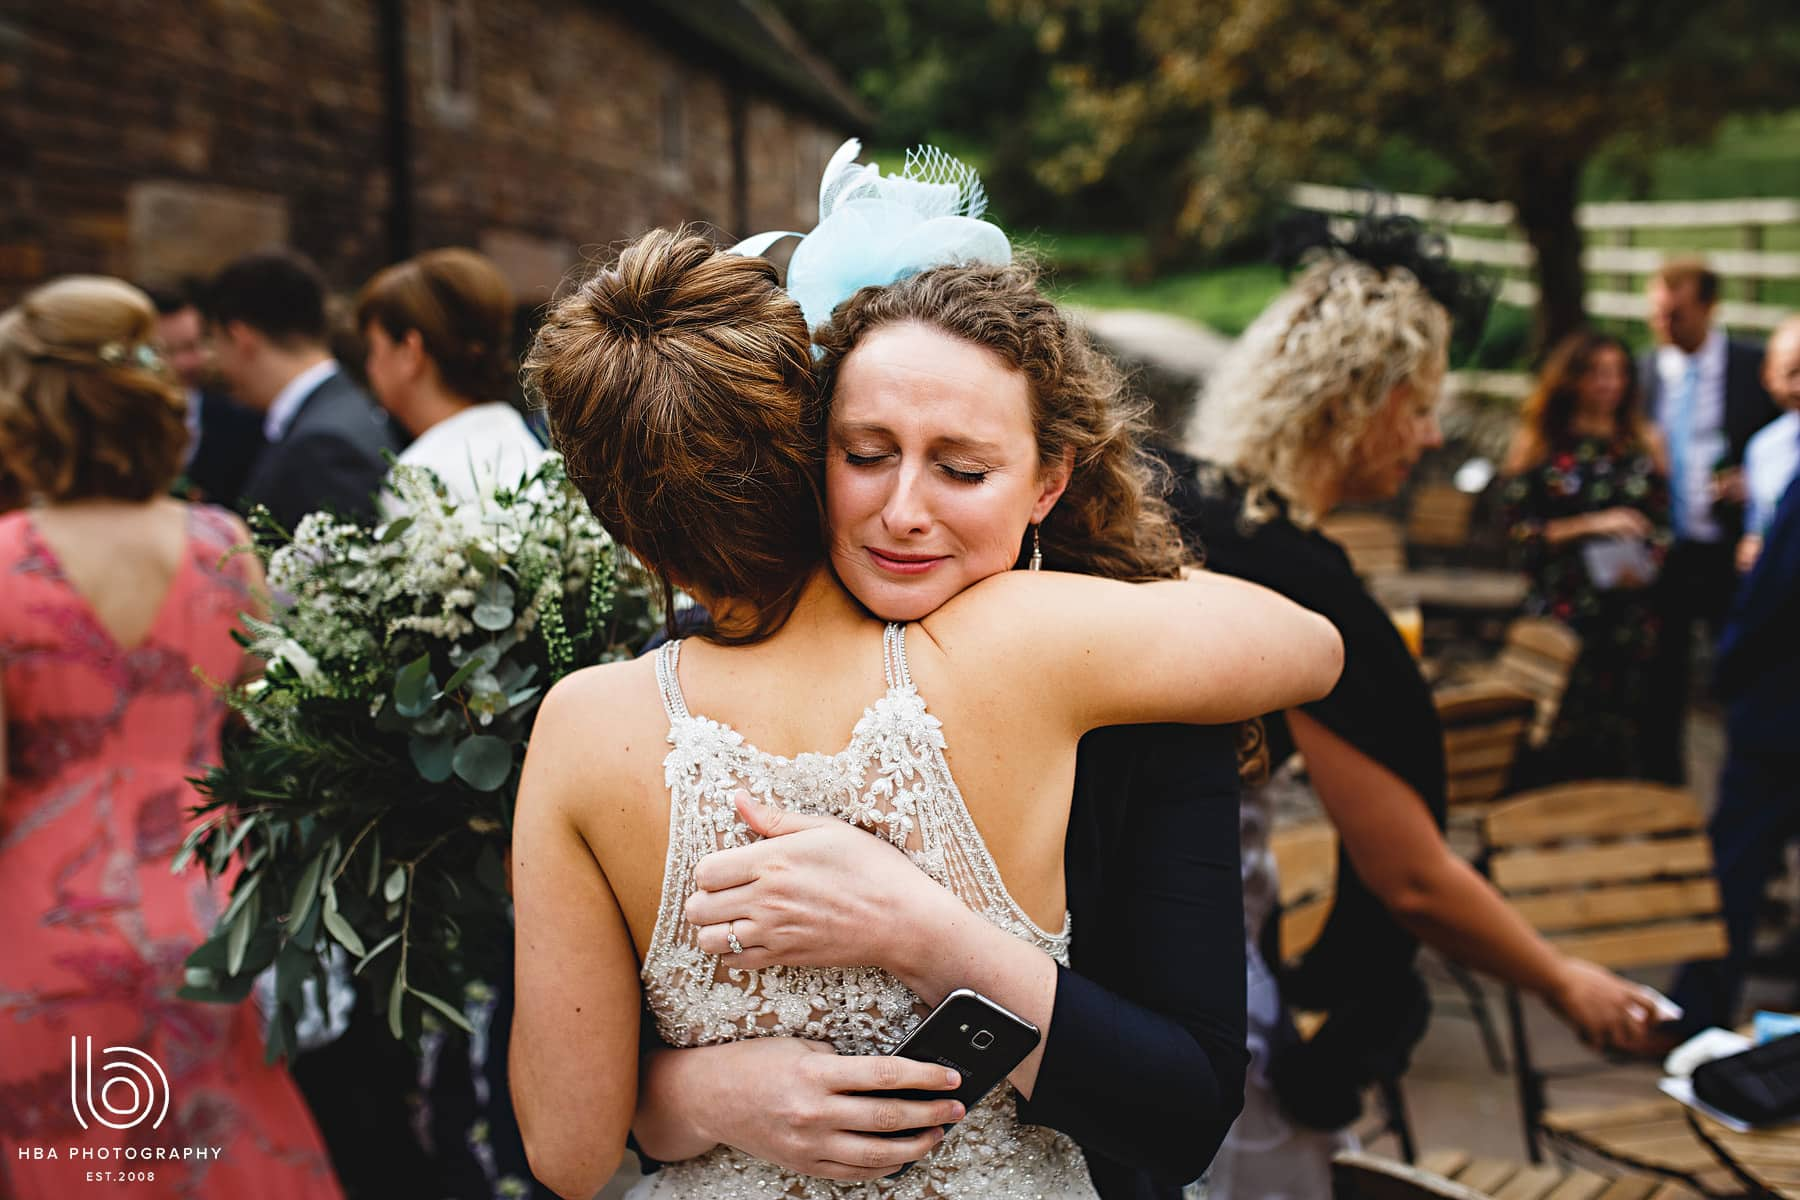 the bride being hugged by a guest